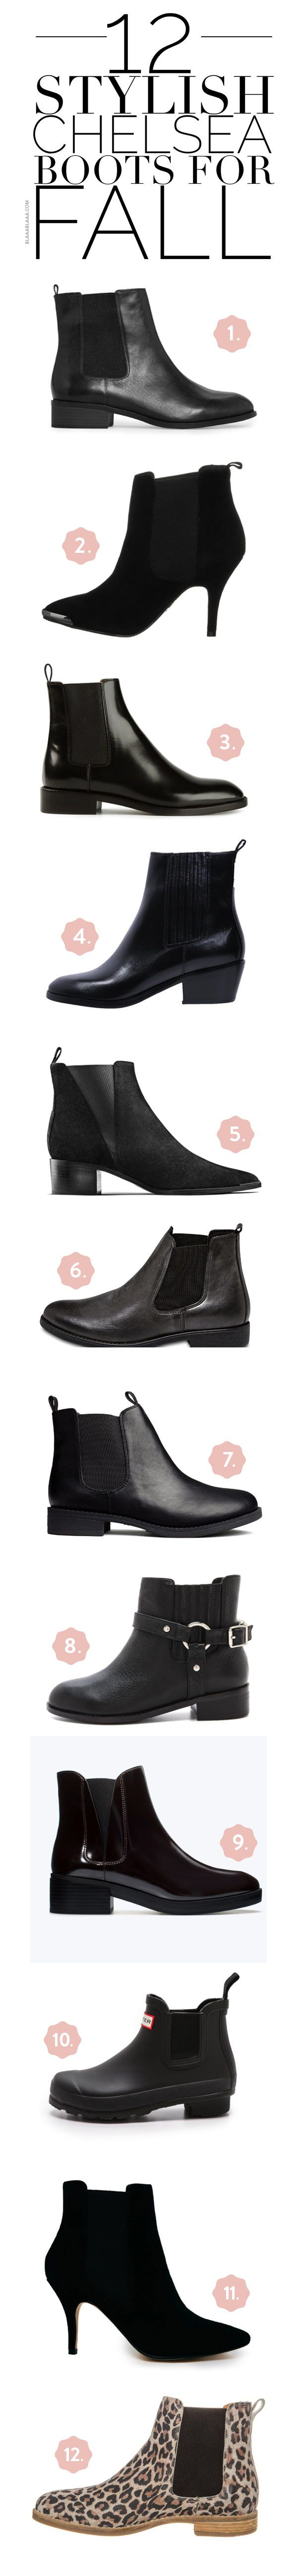 ~12 Stylish Chelsea Boots for Fall | The House of Beccaria